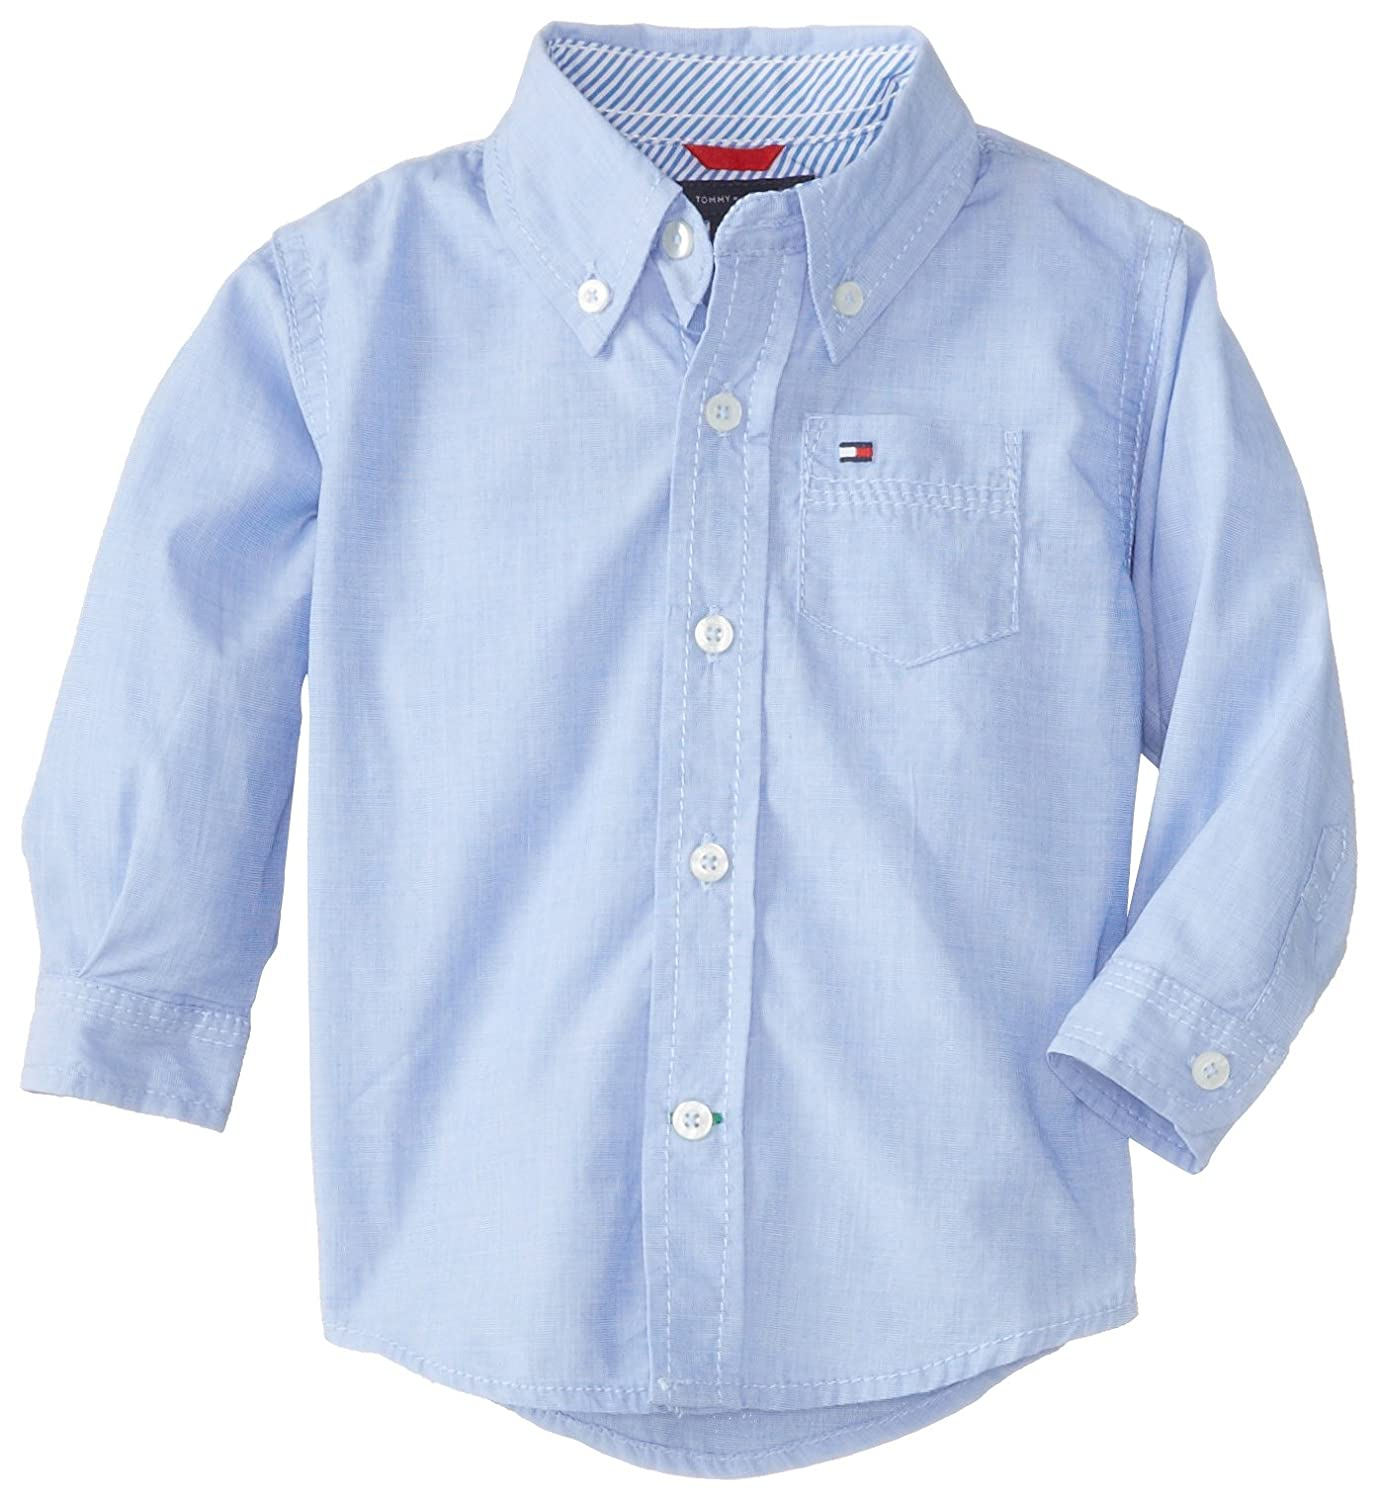 Tommy Hilfiger Baby Boys' Long Sleeve Solid Woven Shirt